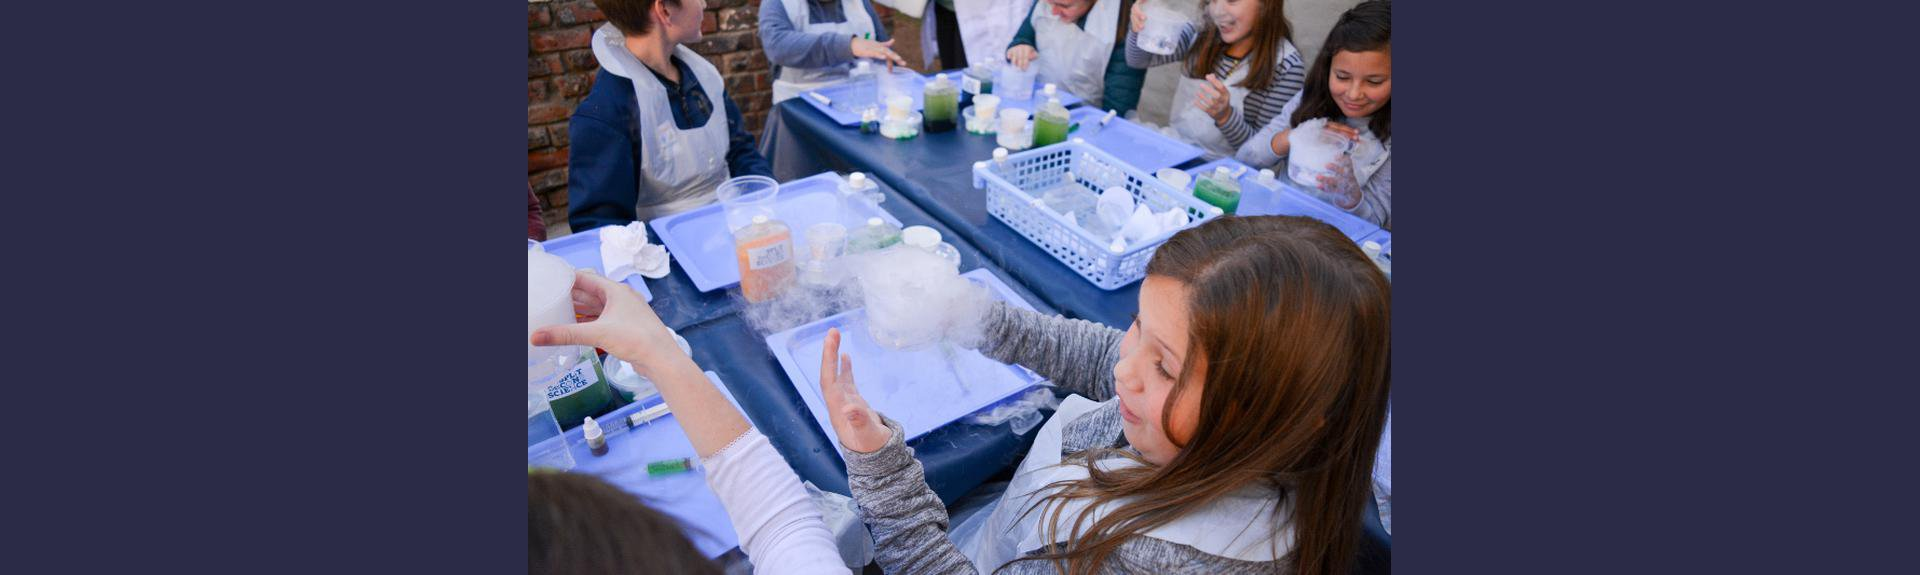 Split Second Science Kids Parties Cape Town | Things to do with Kids